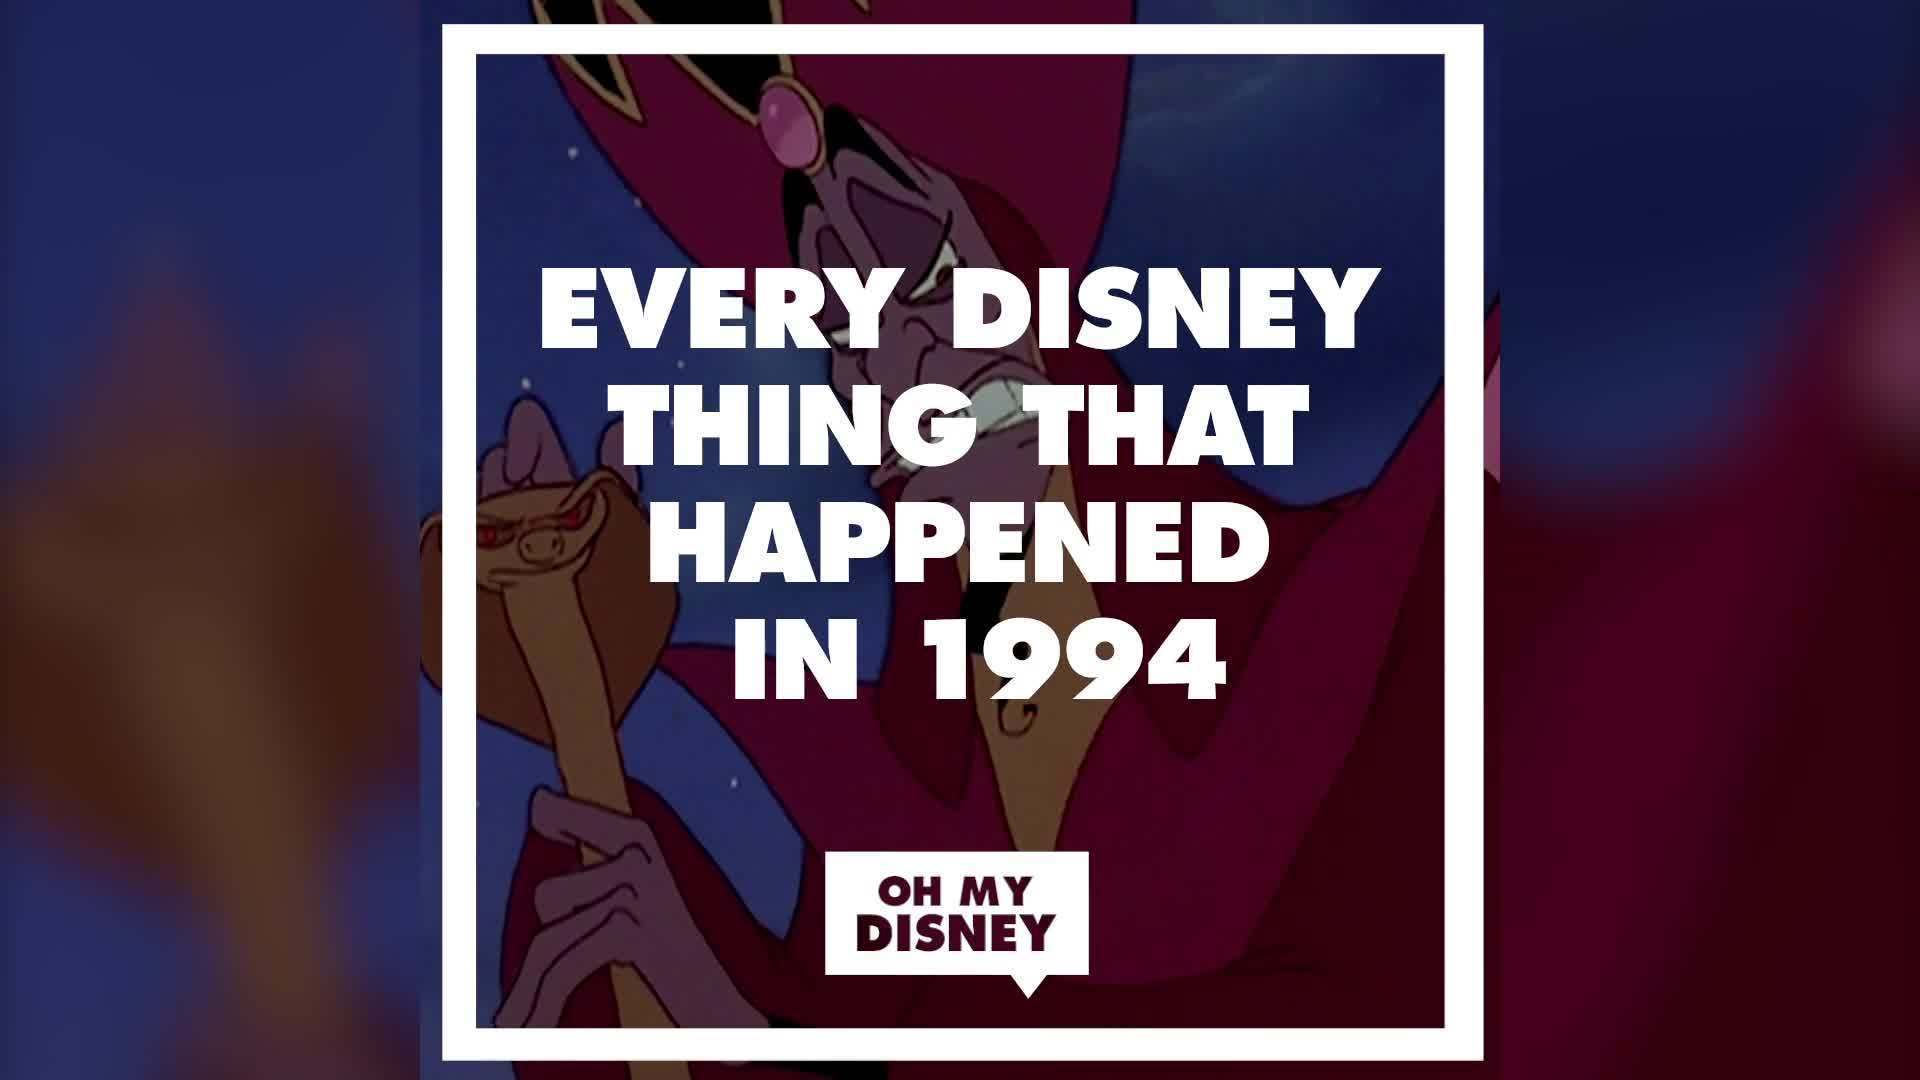 Every Disney Thing That Happened in 1994 | Oh My Disney